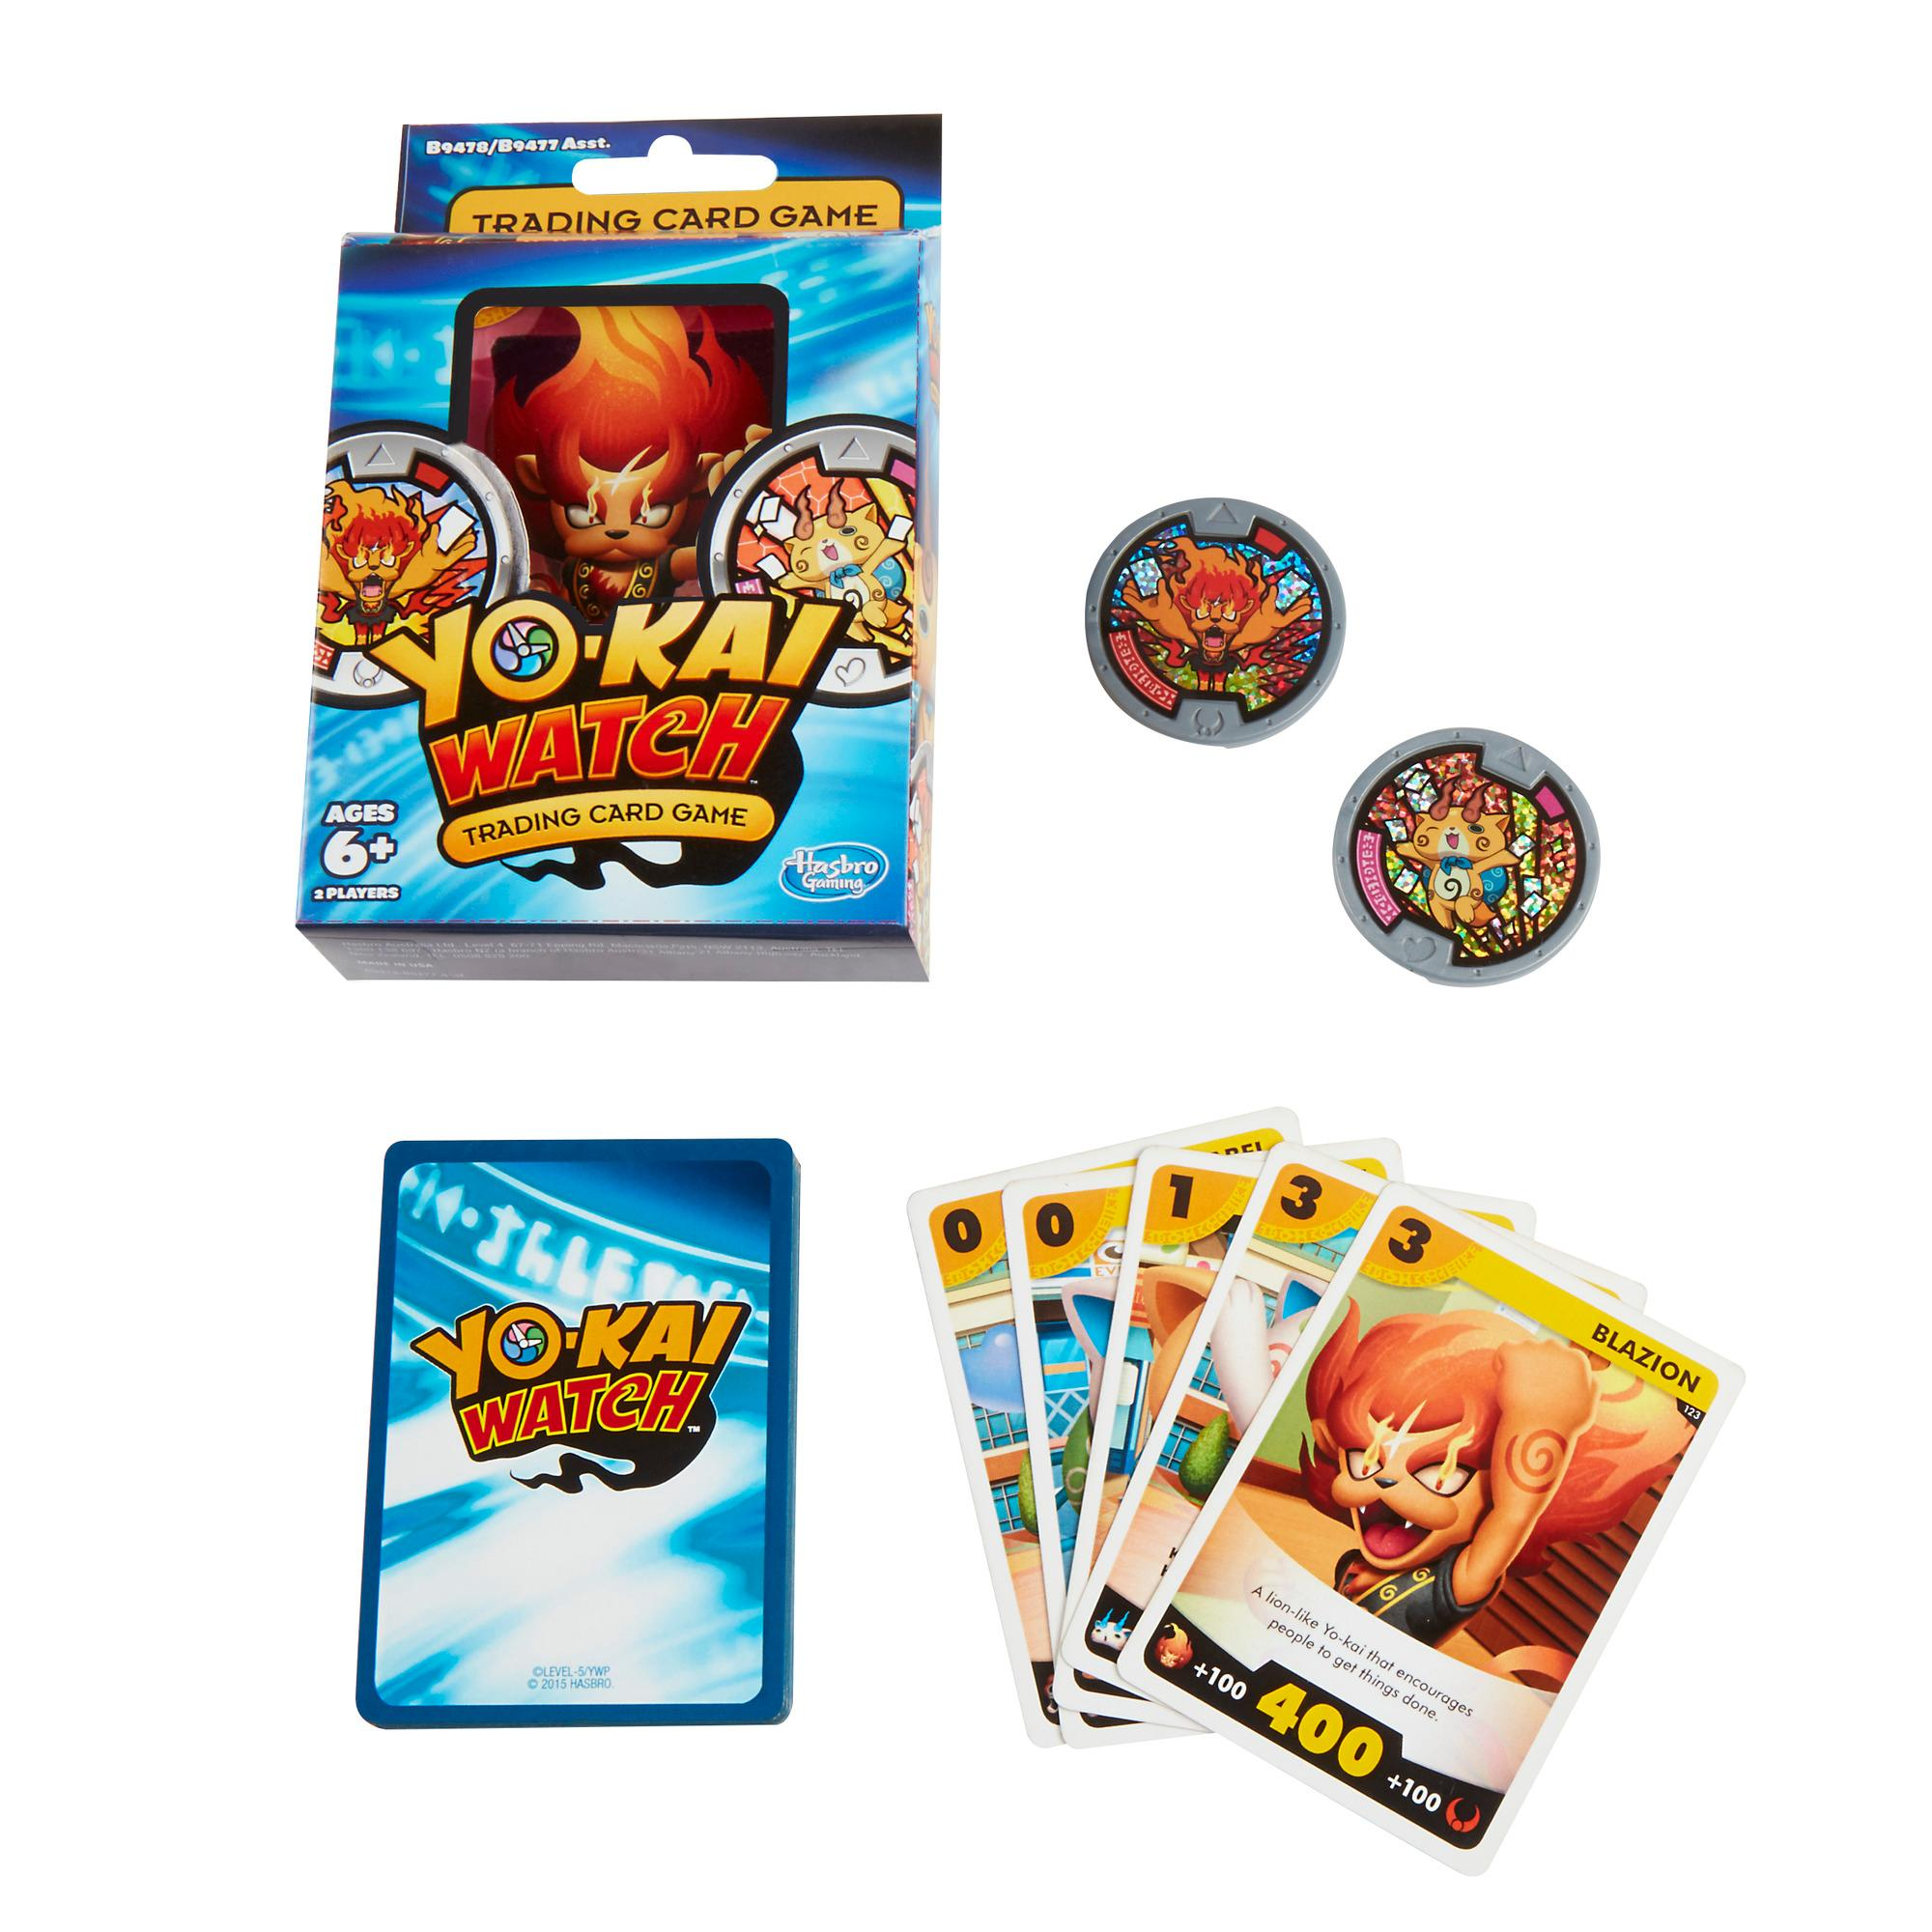 Yokai Watch Trading Card Game Blazion and Komajiro Starter Pack